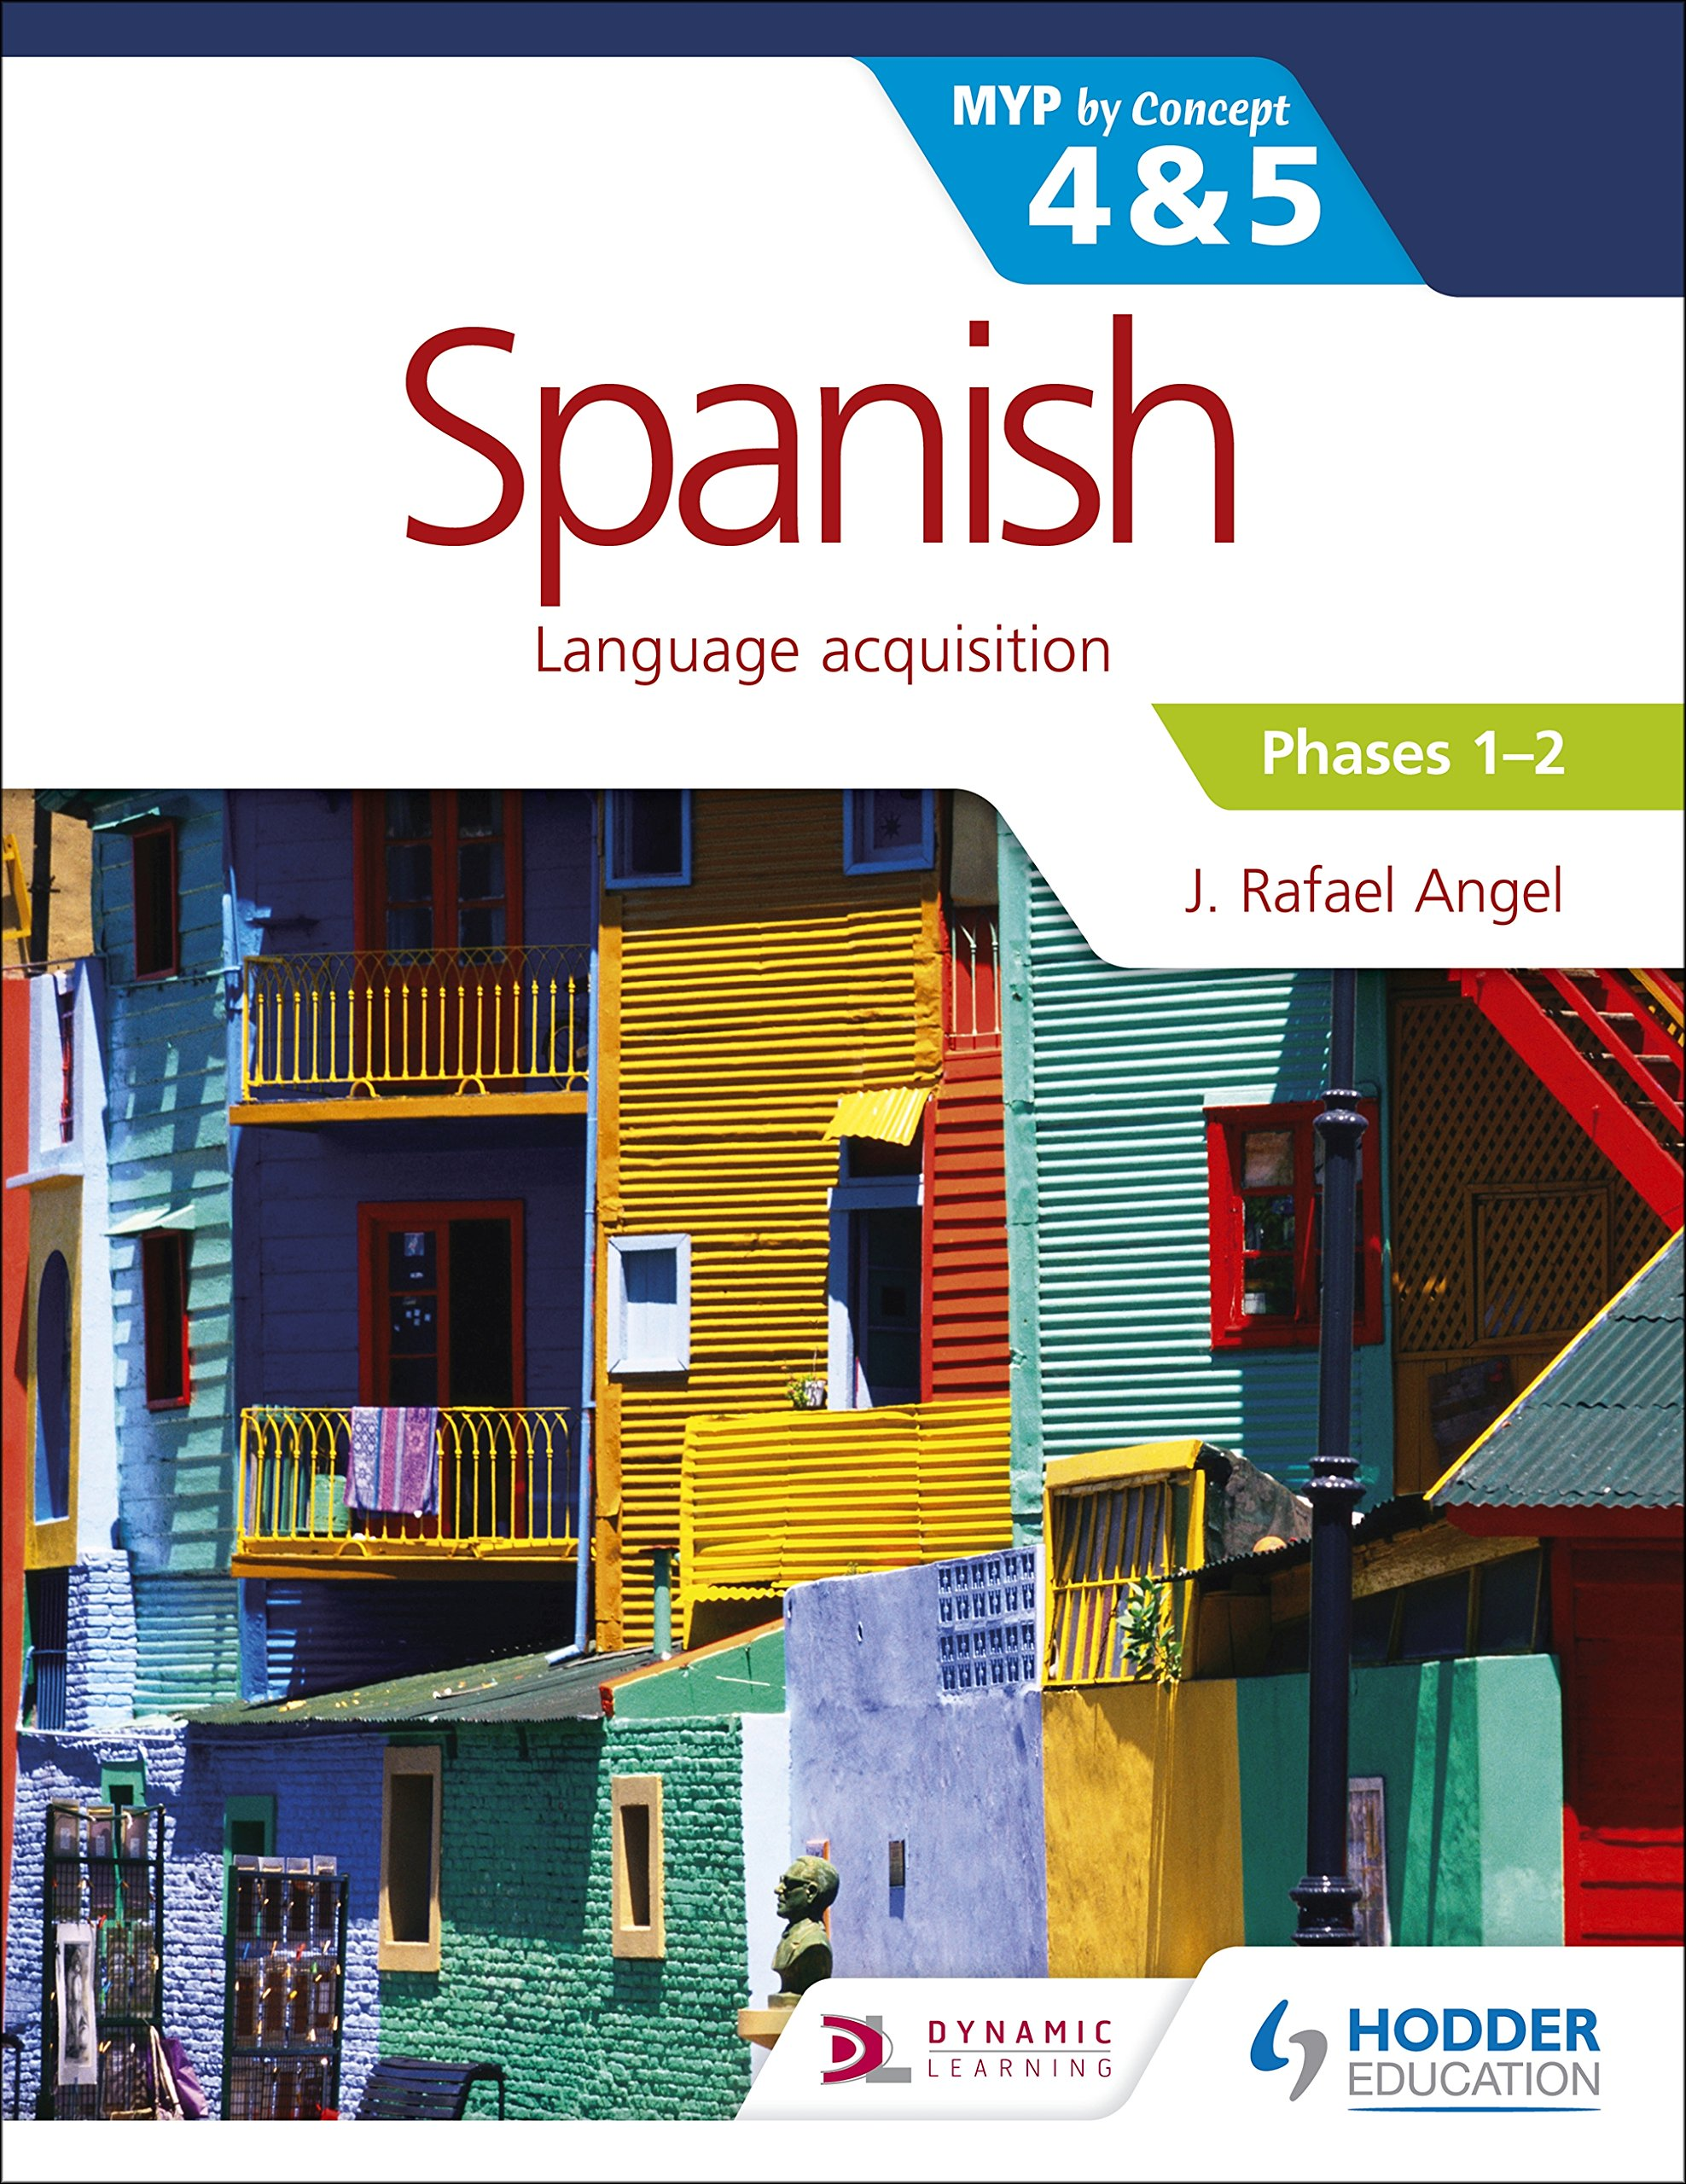 Spanish for the IB MYP 4&5 Phases 1-2: by Concept (Myp by Concept